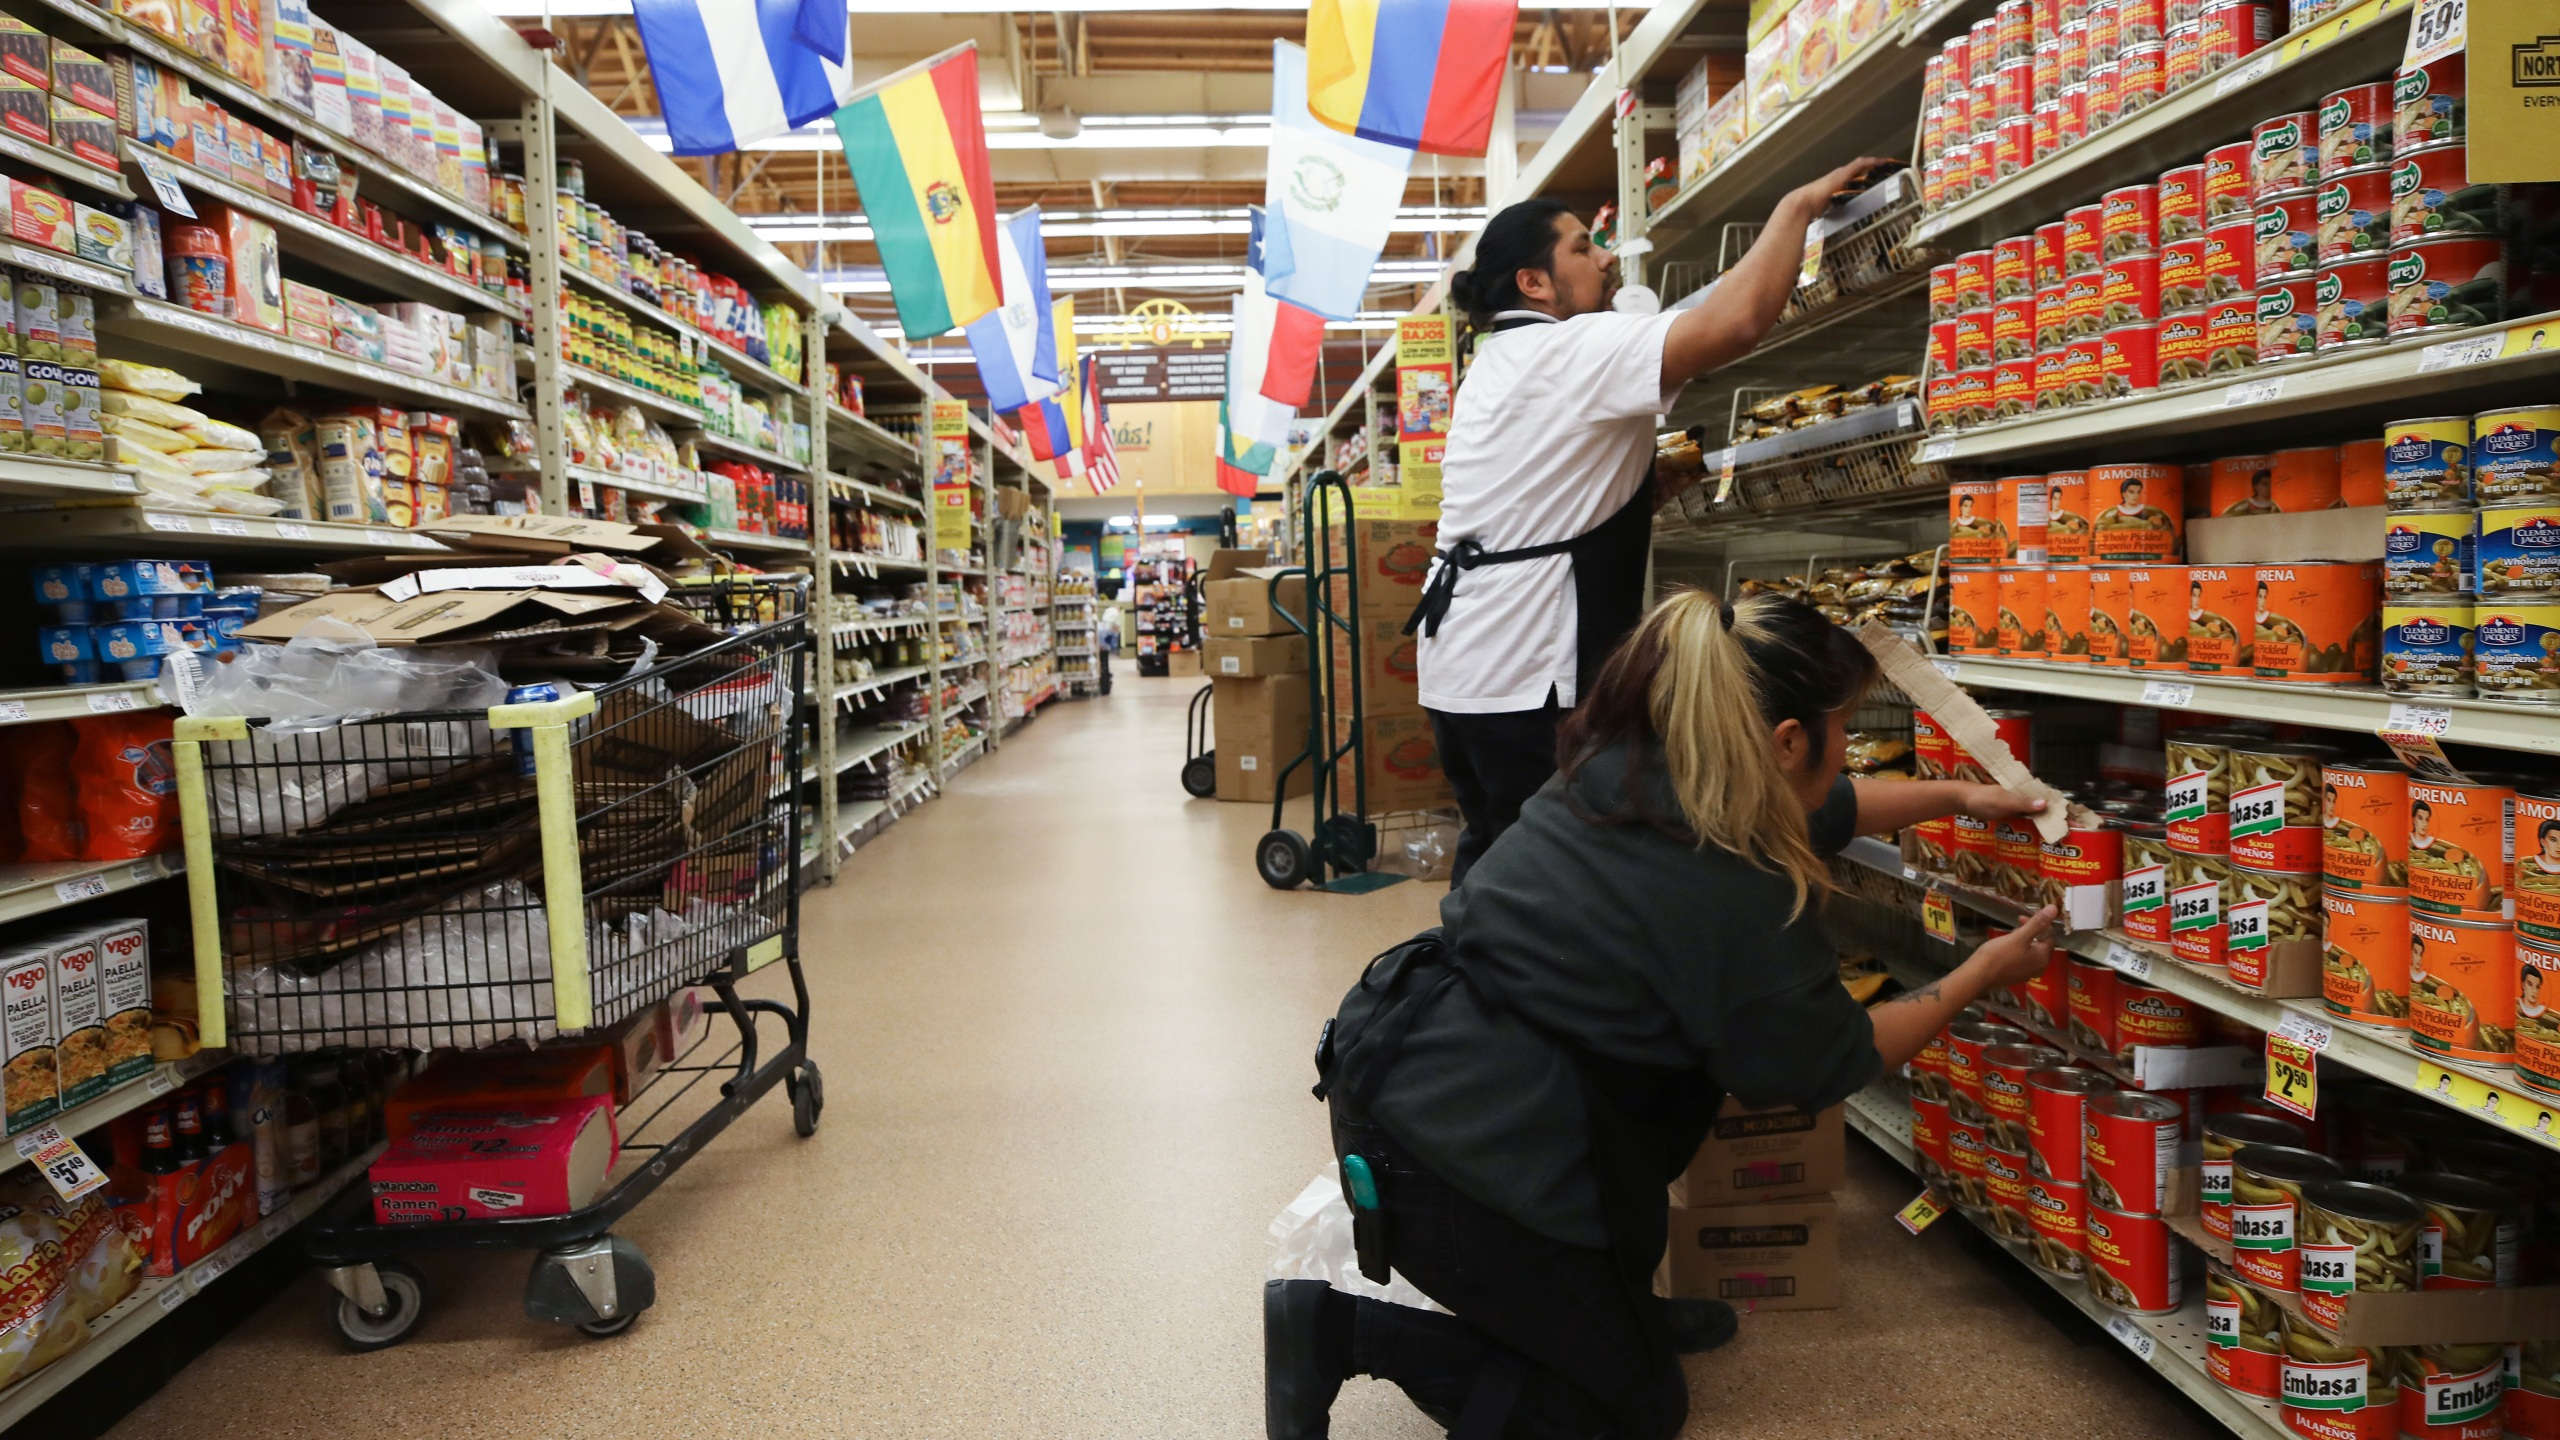 Workers restock items at Northgate Gonzalez Market on March 19, 2020 in Los Angeles. (Mario Tama/Getty Images)